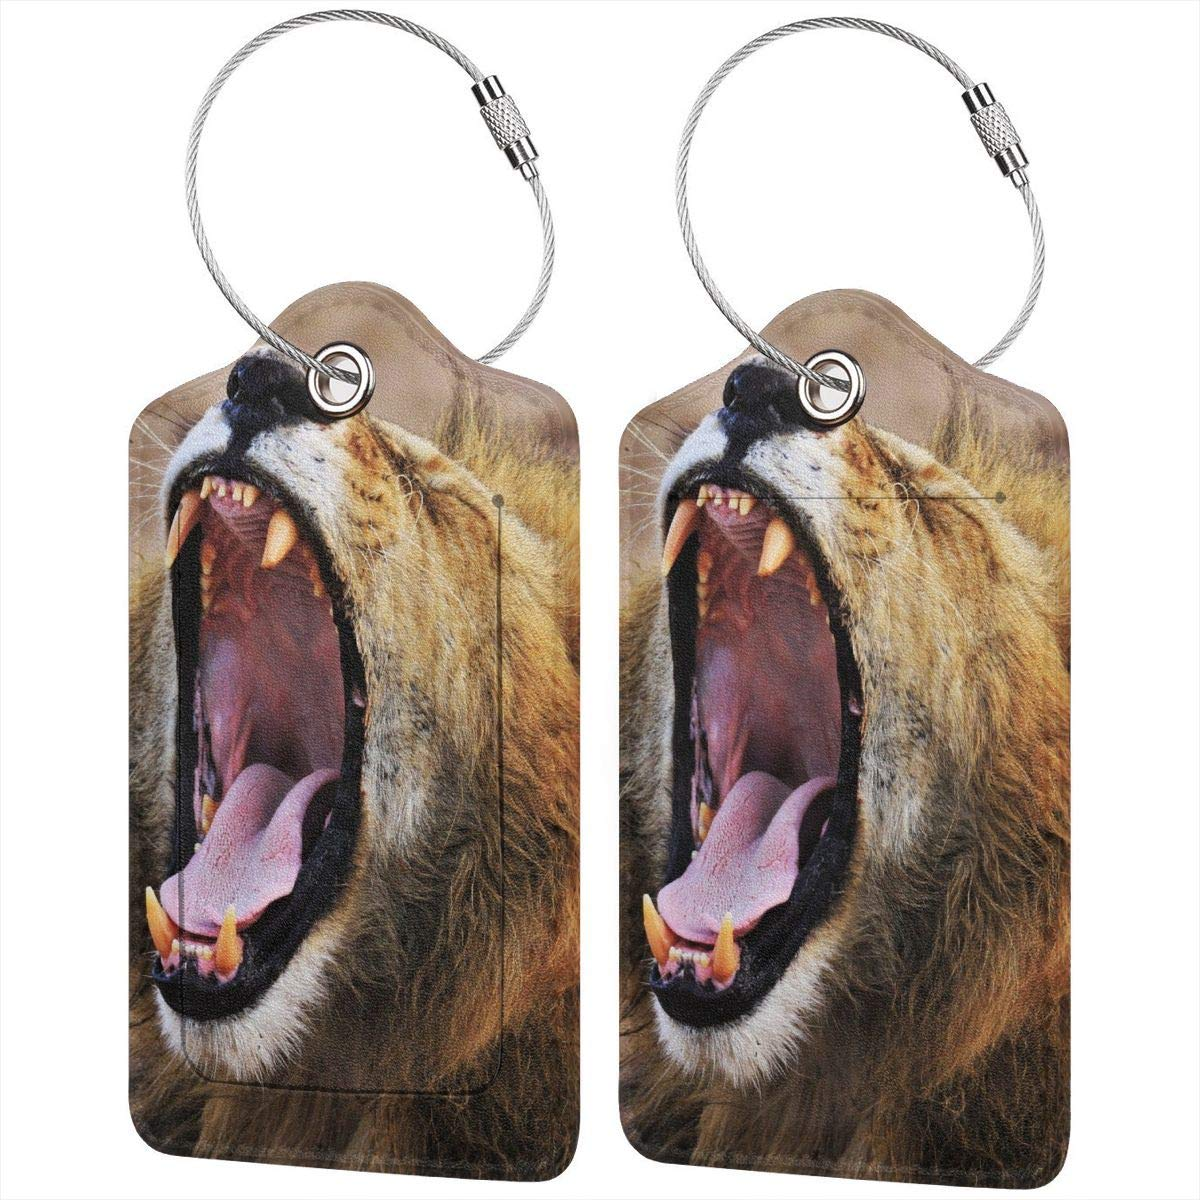 Wild Animals Roaring Lion African Steppe Luggage Tag Label Travel Bag Label With Privacy Cover Luggage Tag Leather Personalized Suitcase Tag Travel Accessories